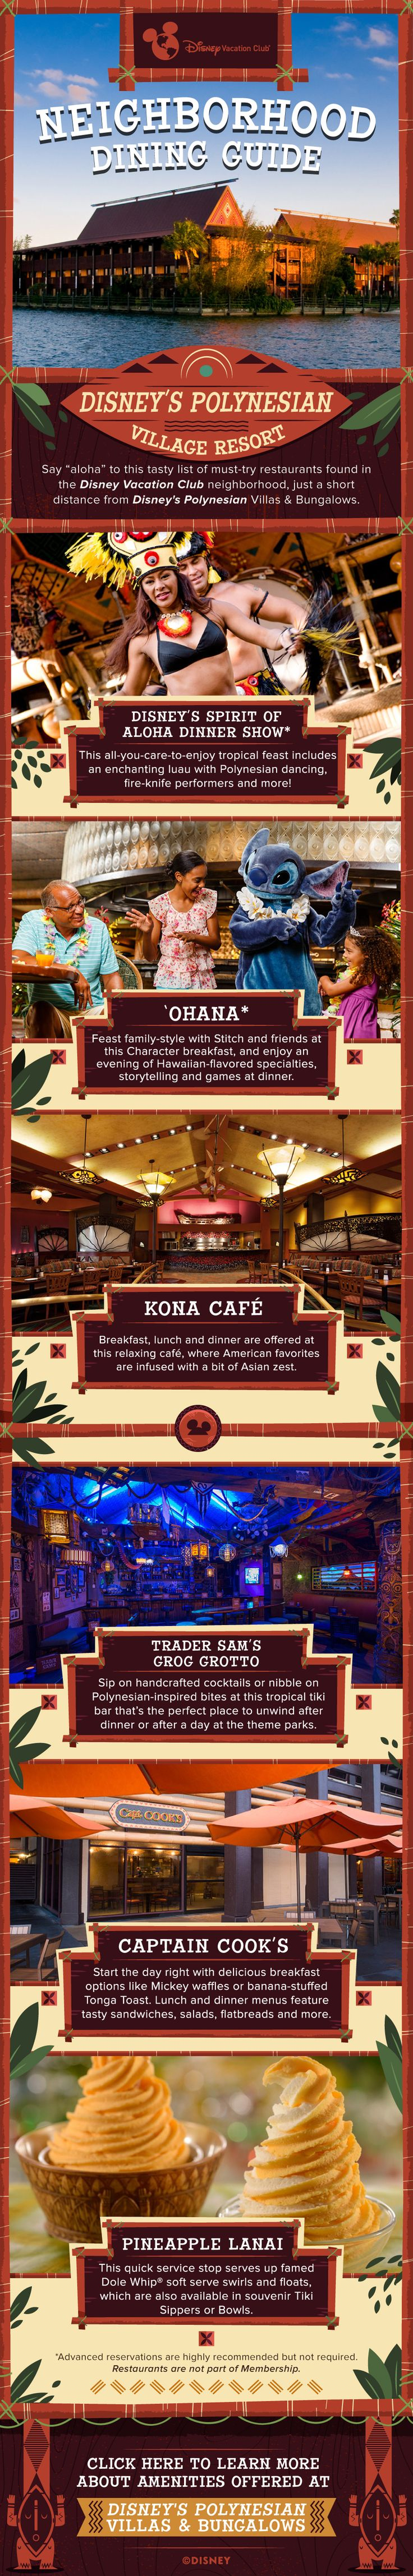 Check out this complete guide to dining offered in the Disney Vacation Club Neighborhood at Disney's Polynesian Village Resort. Click to learn more about amenities offered at the resort.